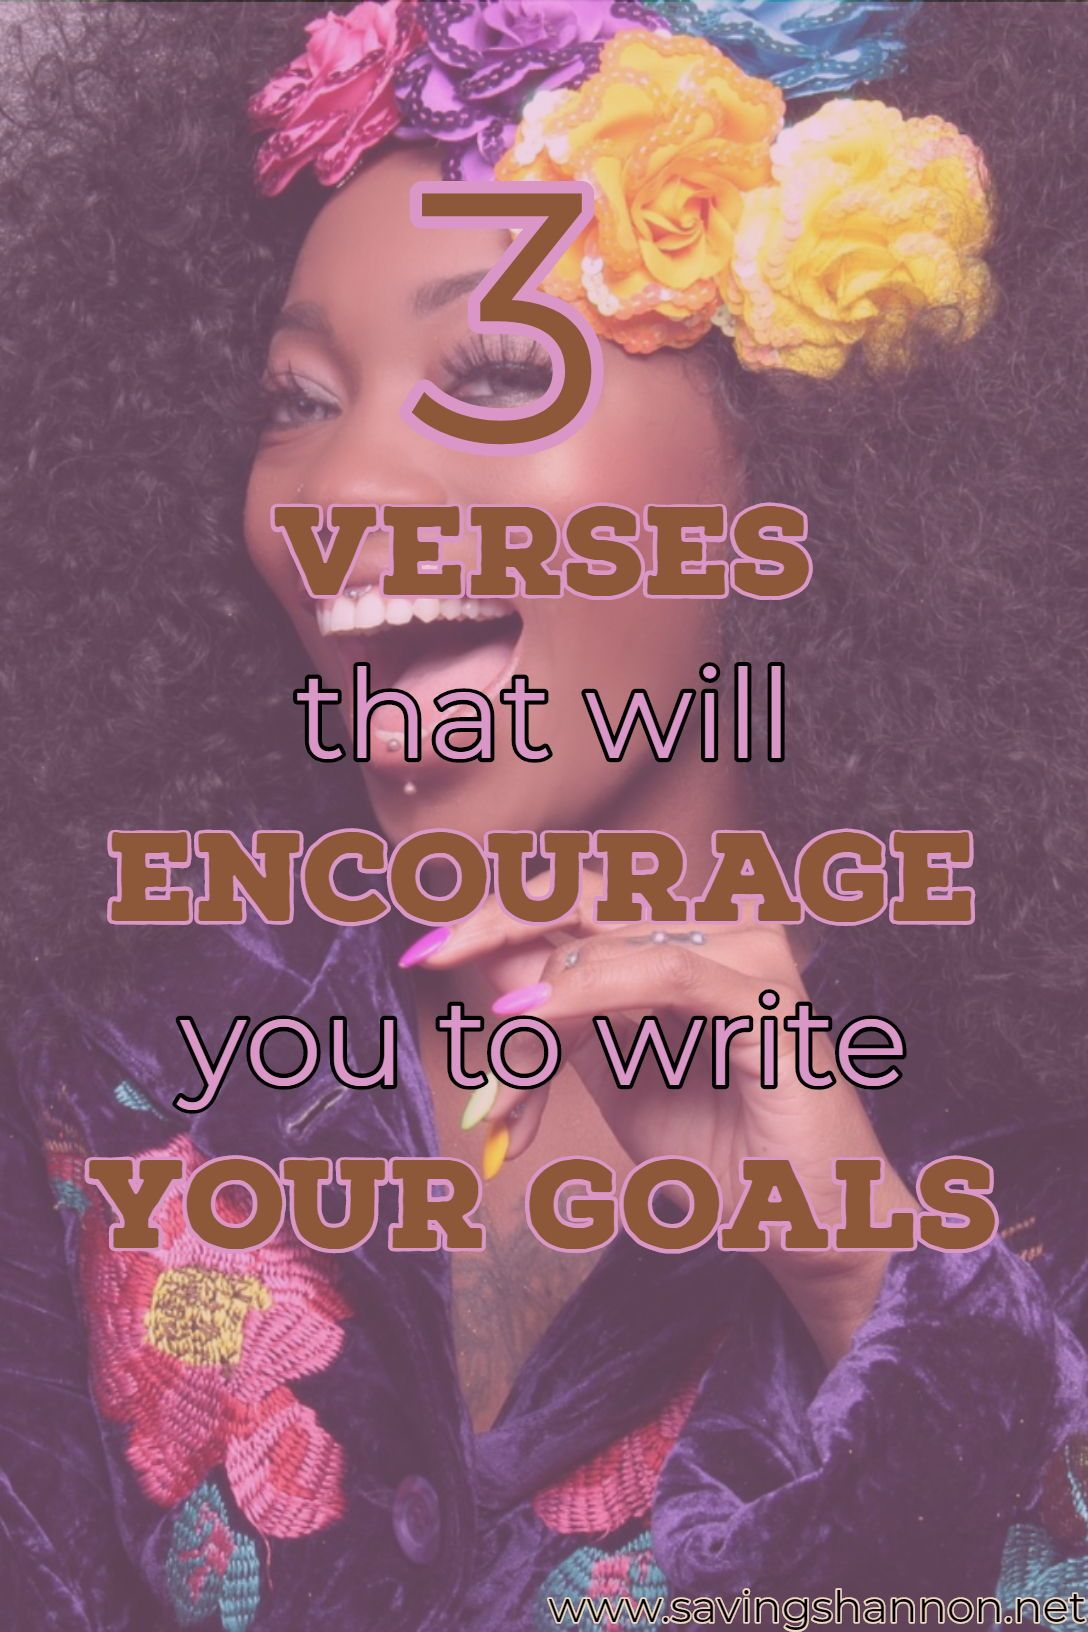 3 Benefits Of Writing Your Goals Down